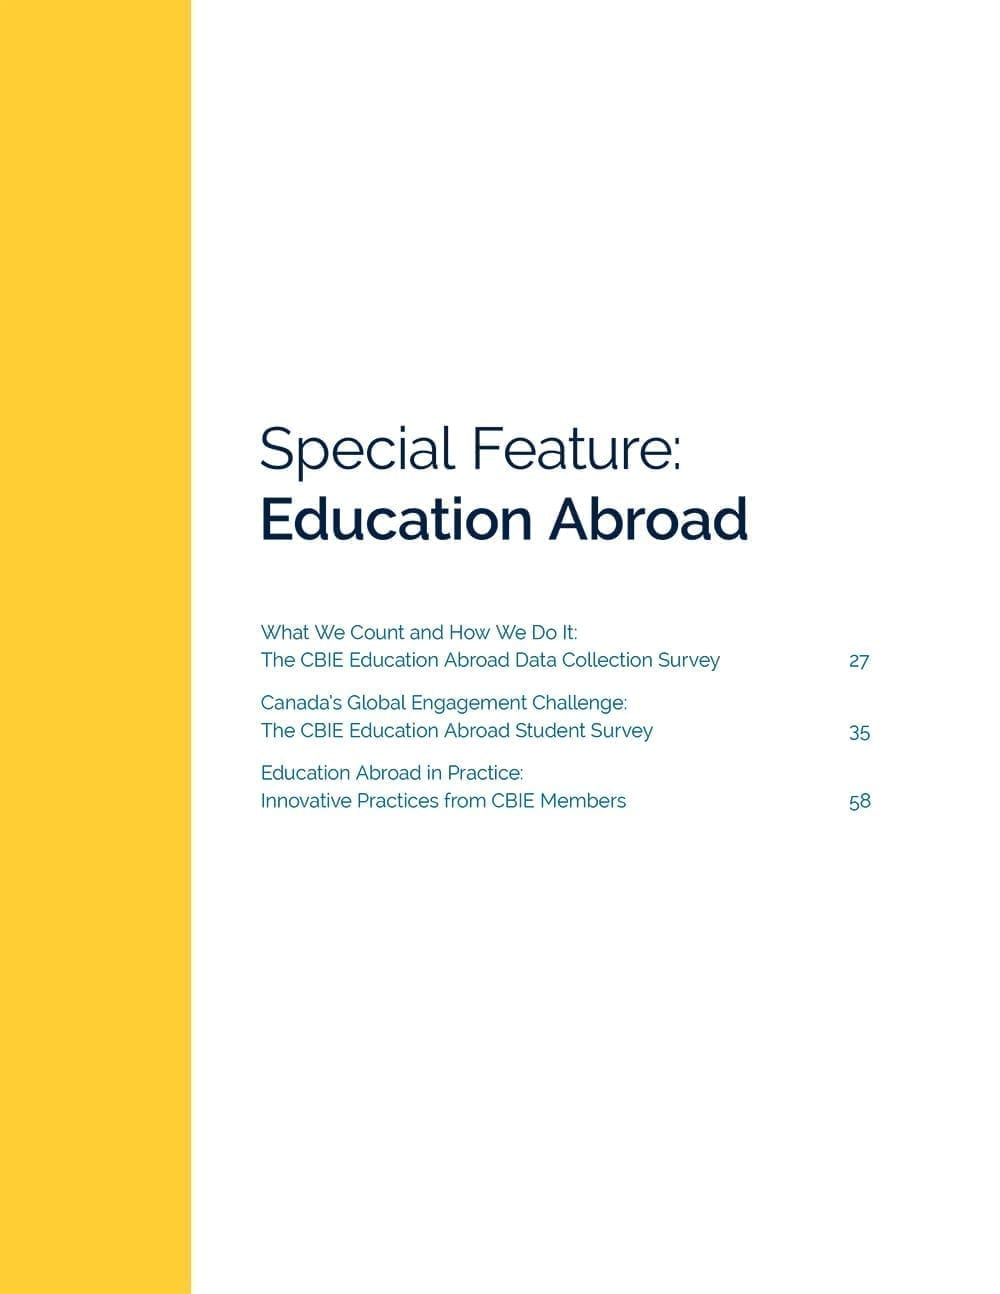 Special Feature: Education Abroad